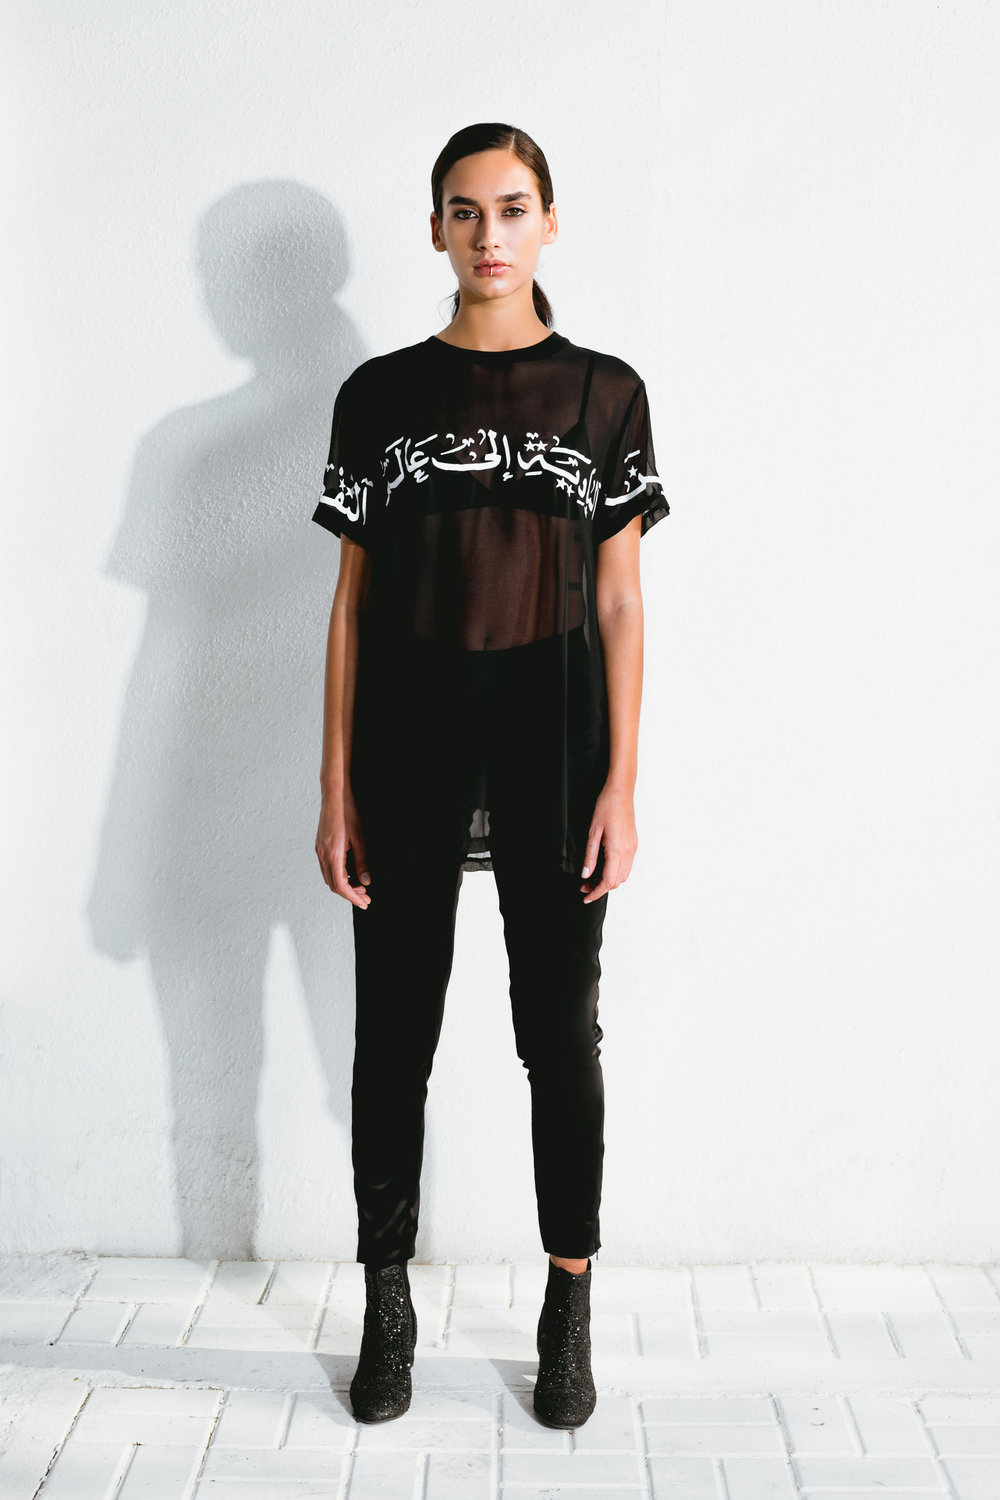 the arabian dream t-shirt & black satin pants